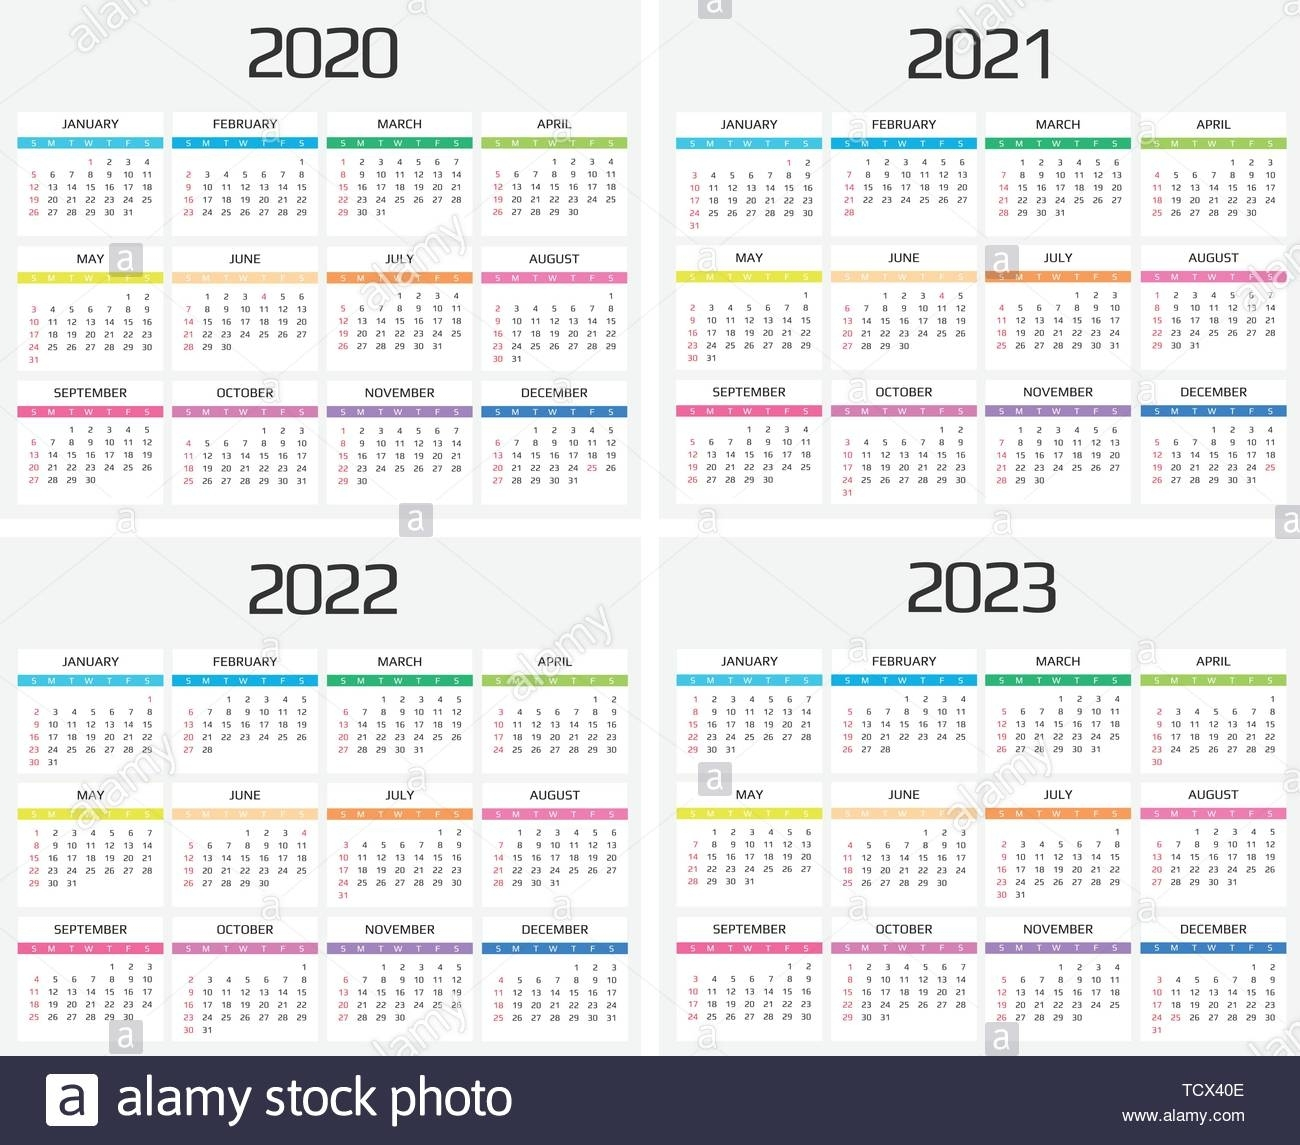 Calendar 2020, 2021, 2022, 2023 Template. 12 Months. Include throughout Yearly 2019 2020 2021 2022 2023